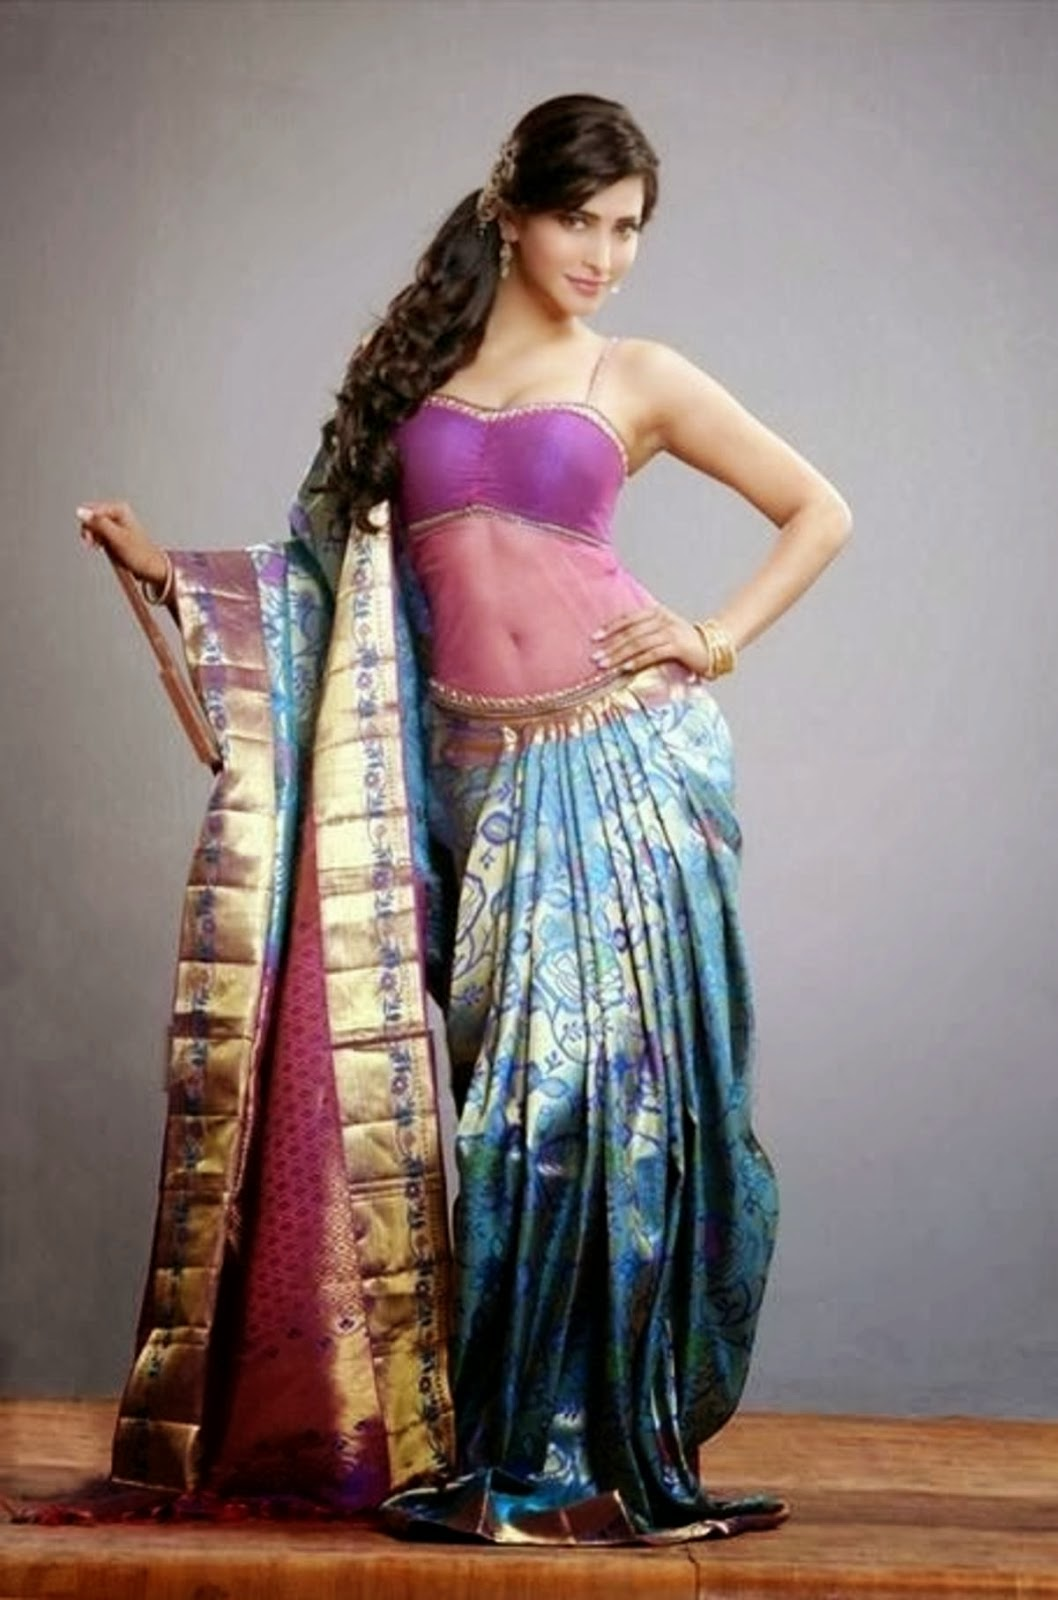 Shruti Haasan looking like a Goddess in Fancy Saree